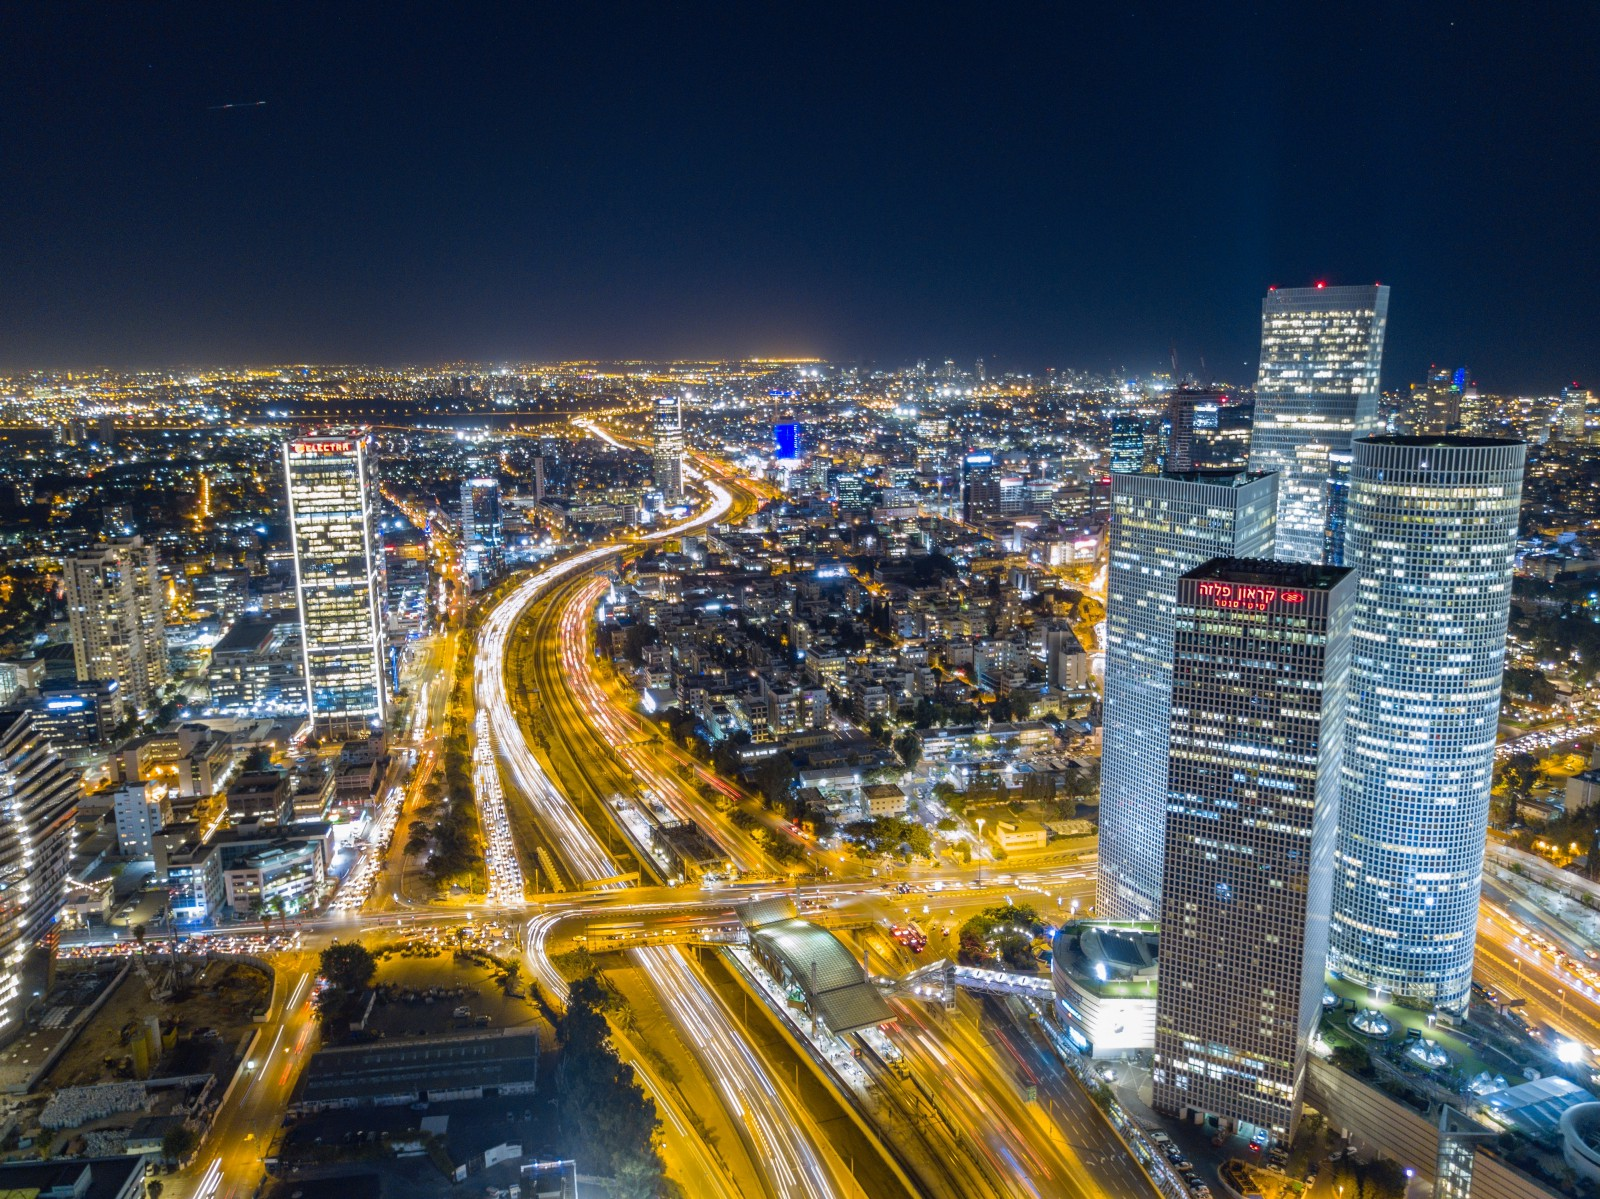 Waking up from Israel's start-up dream